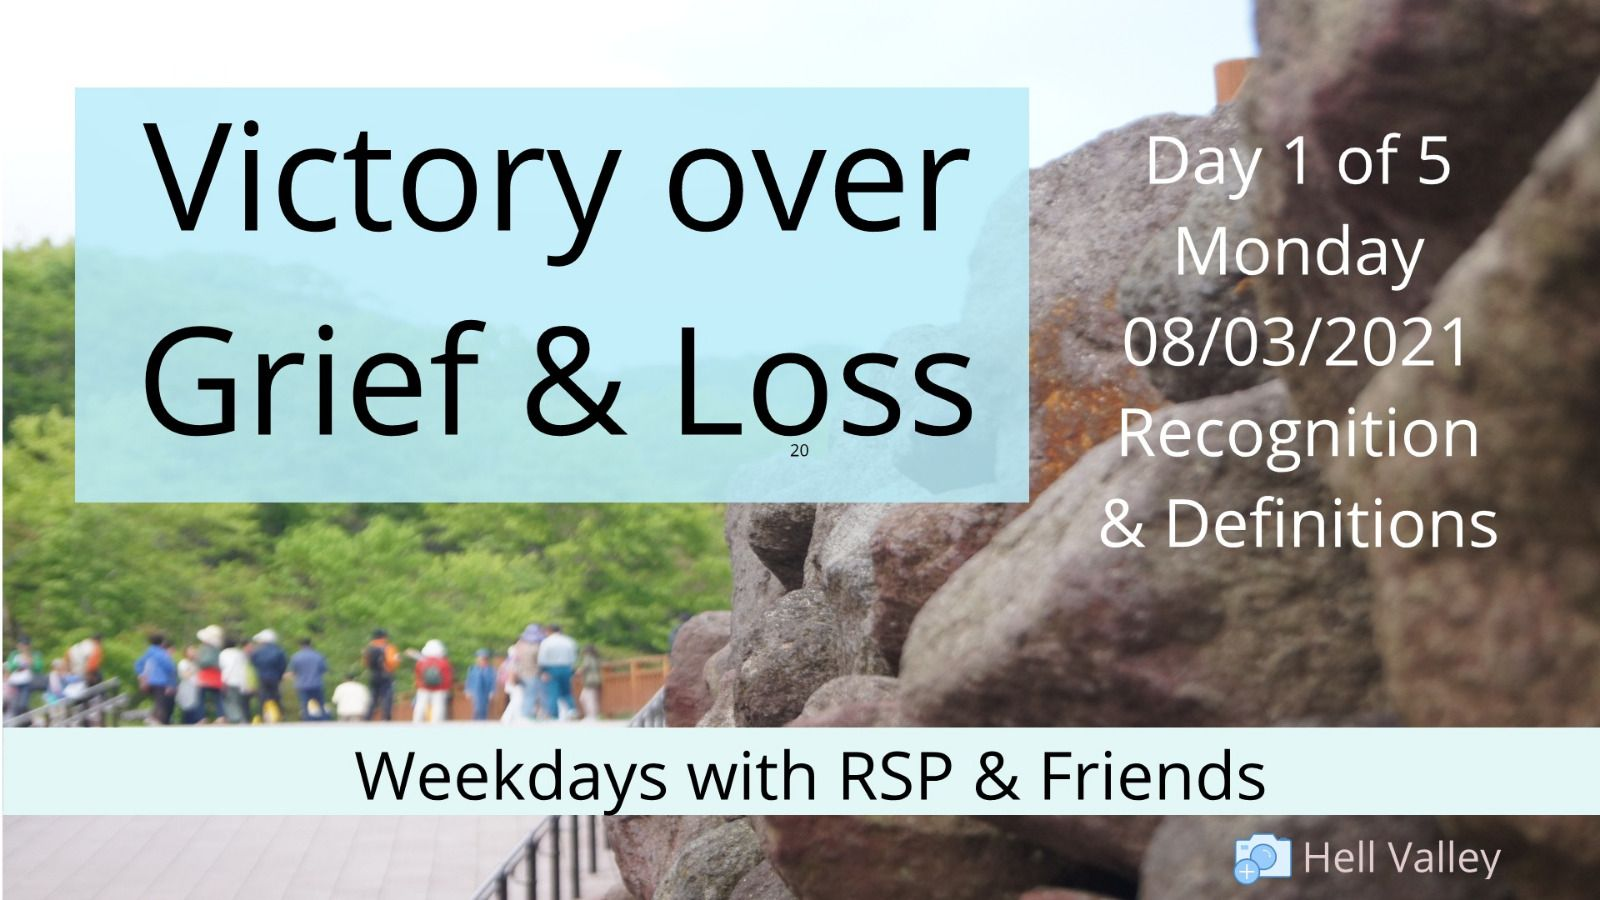 Victory over grief & loss - Day 1